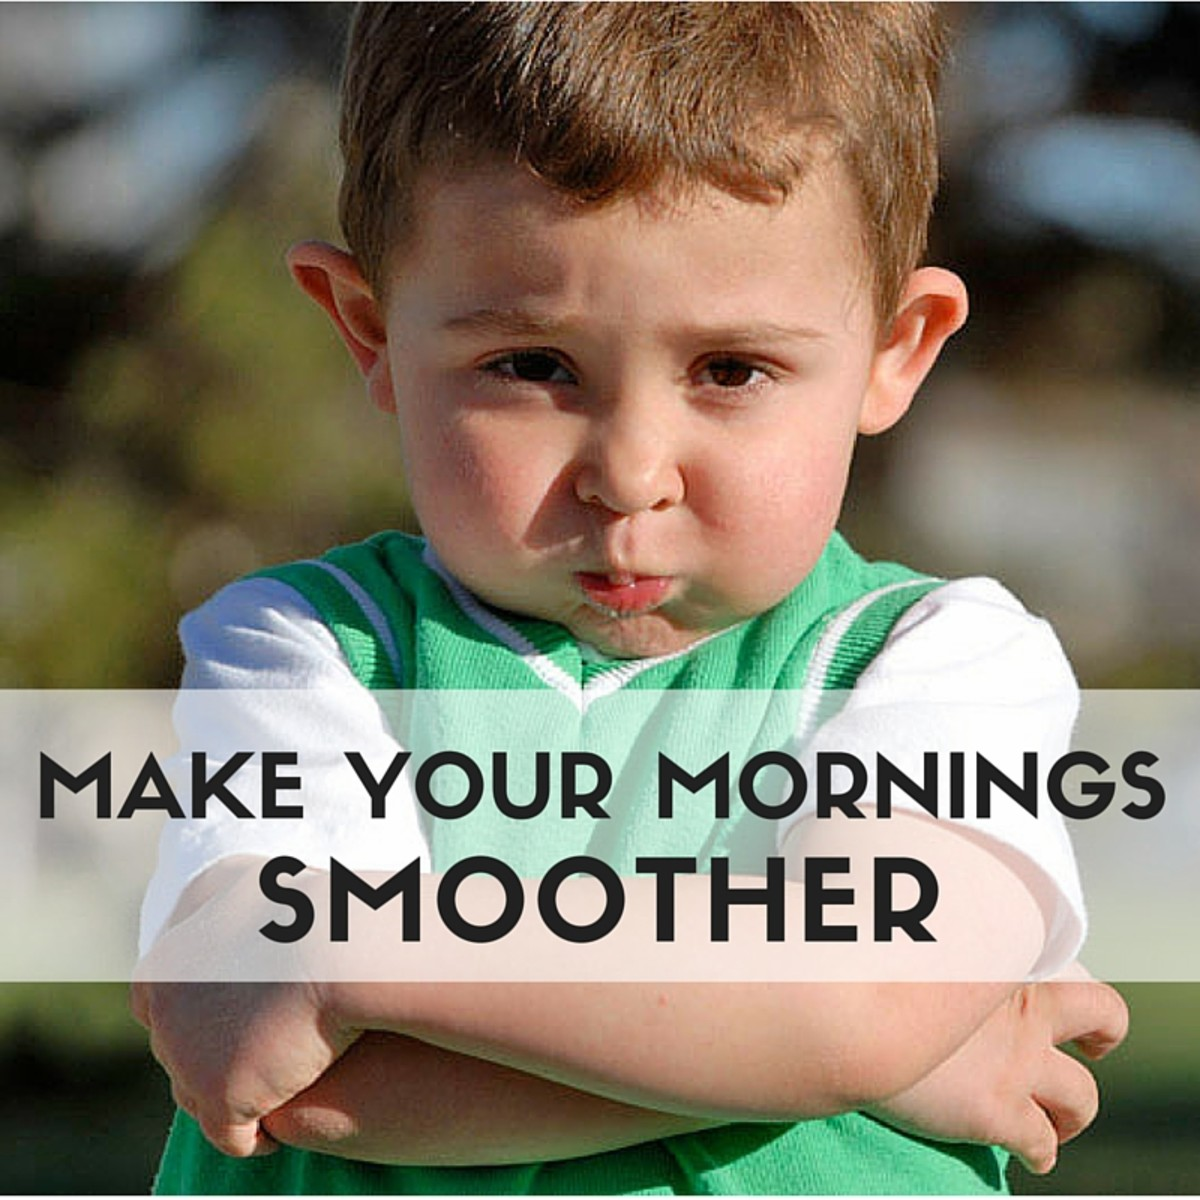 Make Your Mornings Smoother